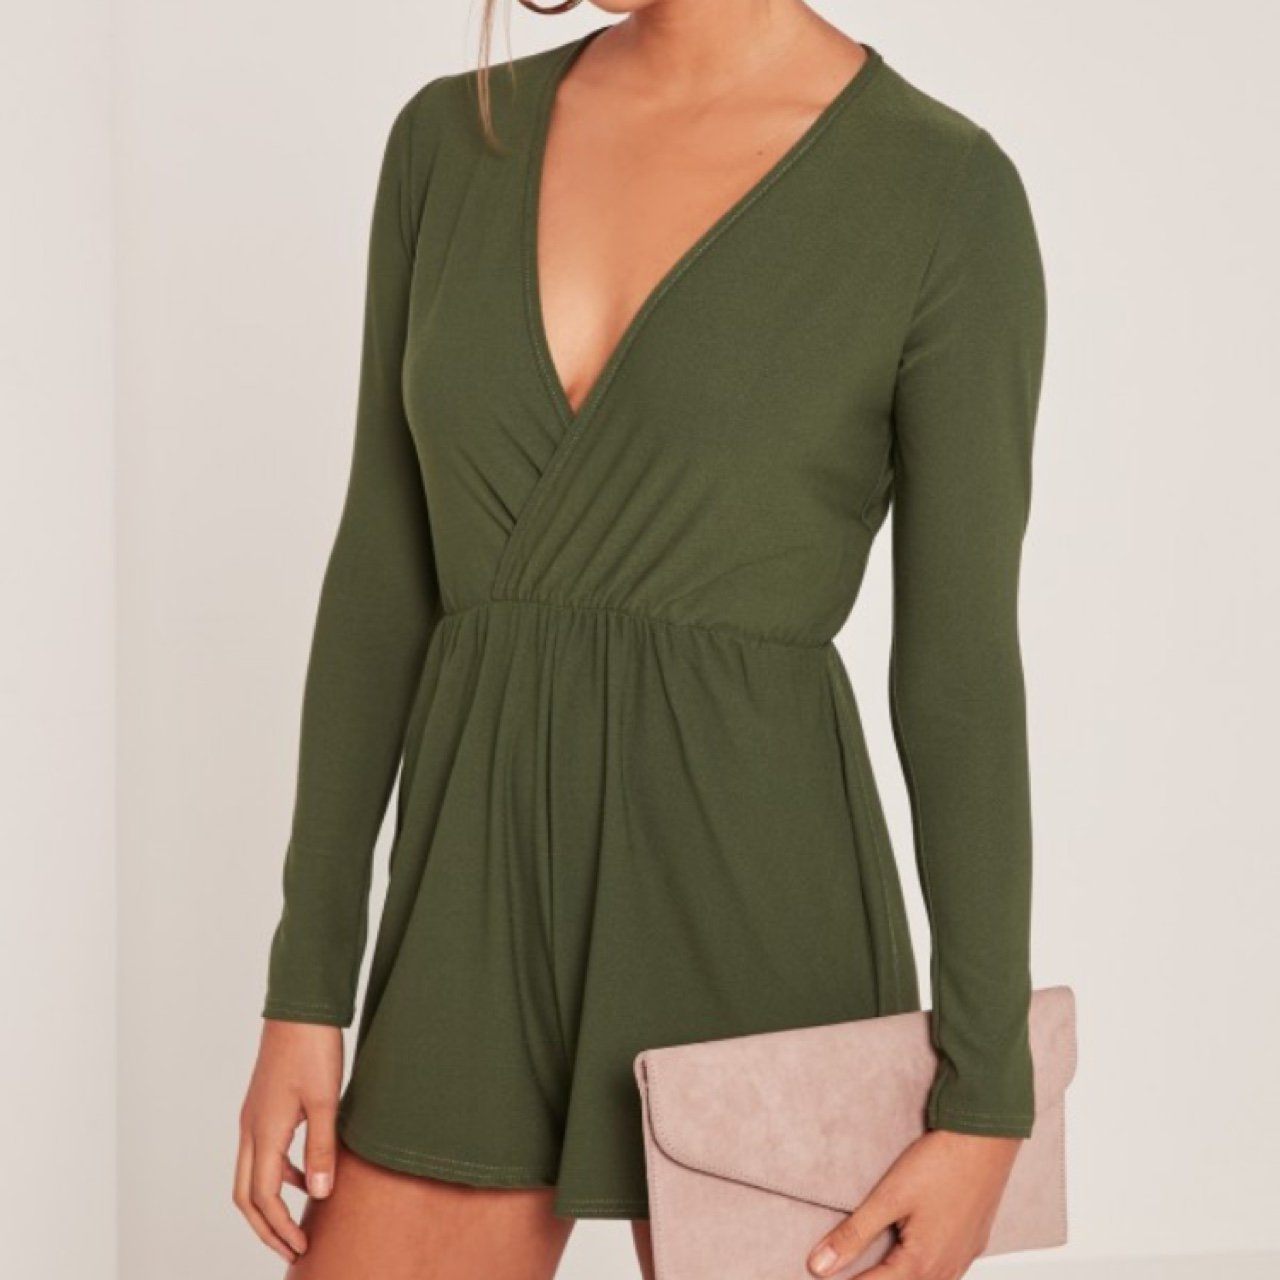 427fd5679e Miss guided khaki green wrap front playsuit